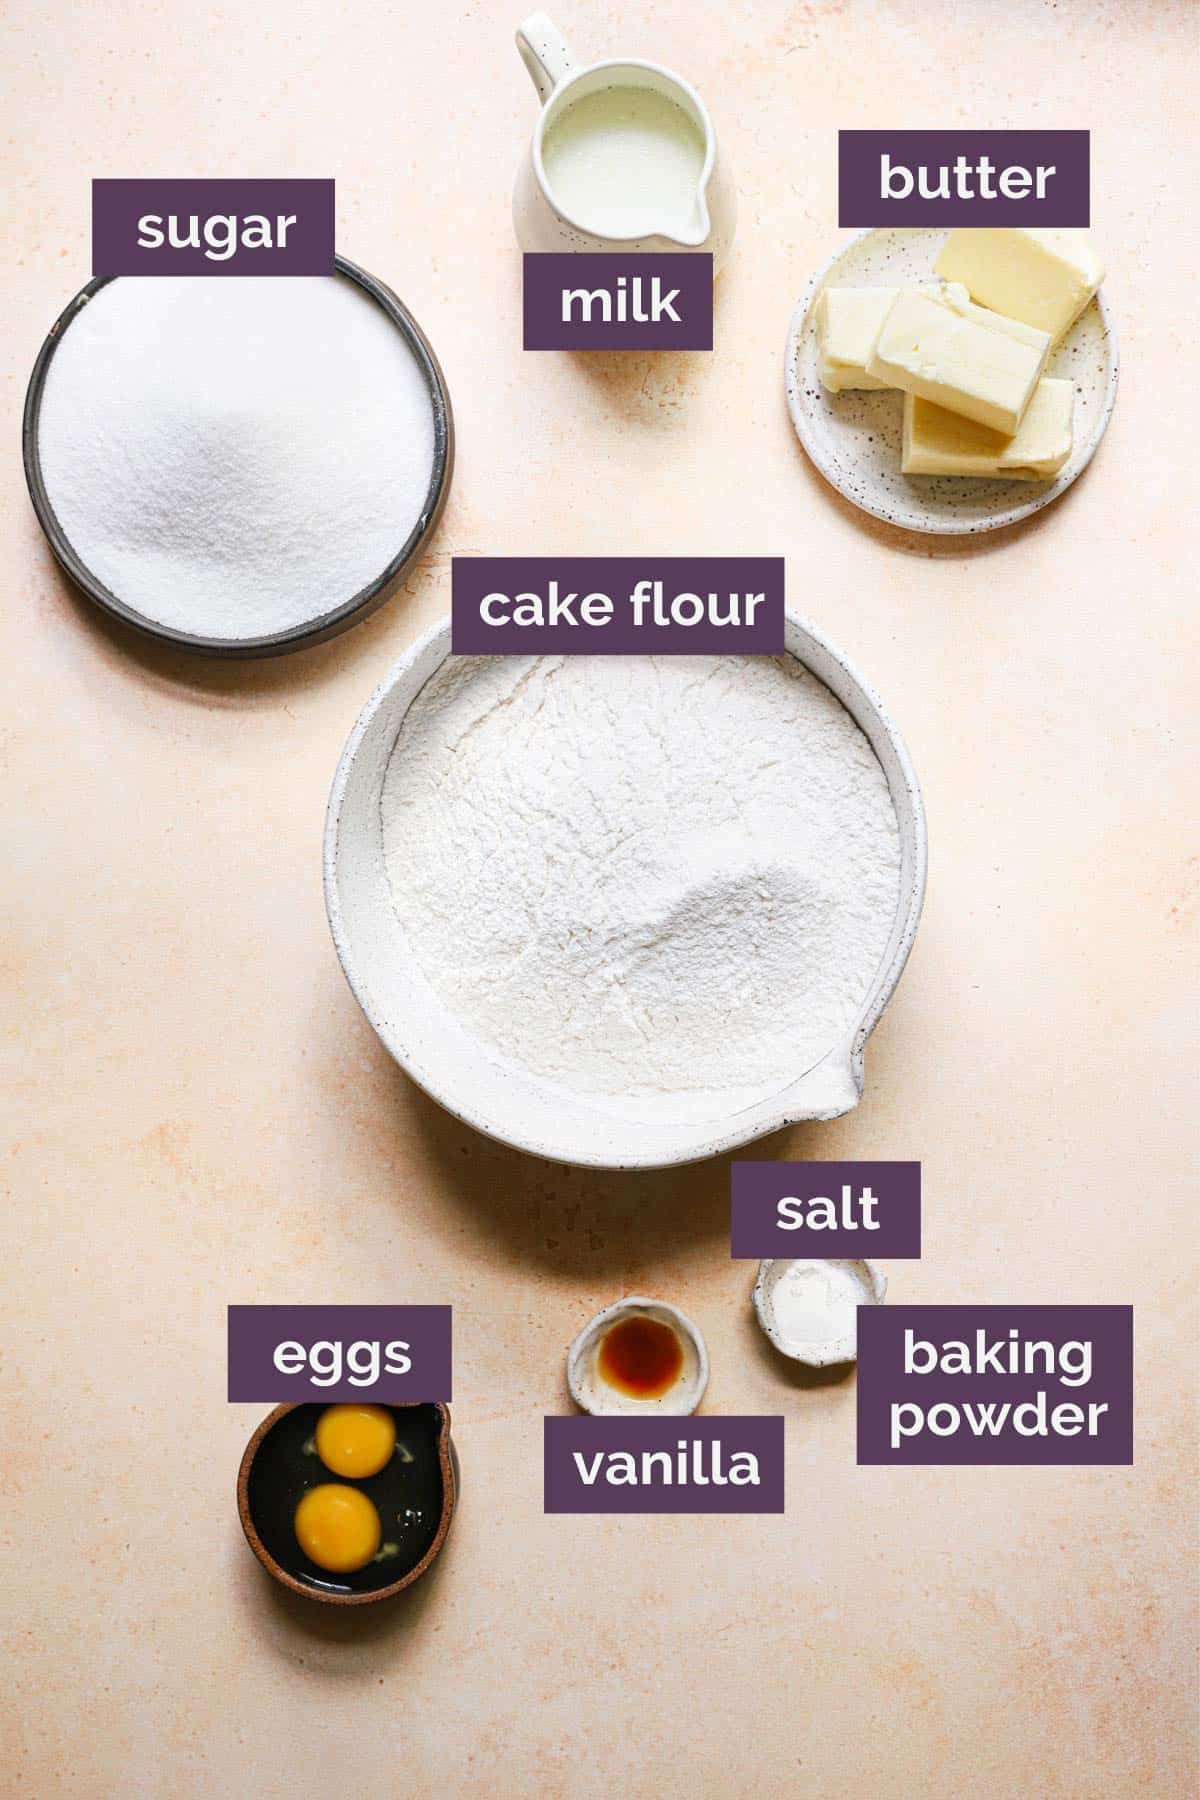 Ingredients for the cookies with purple labels for each ingredient.